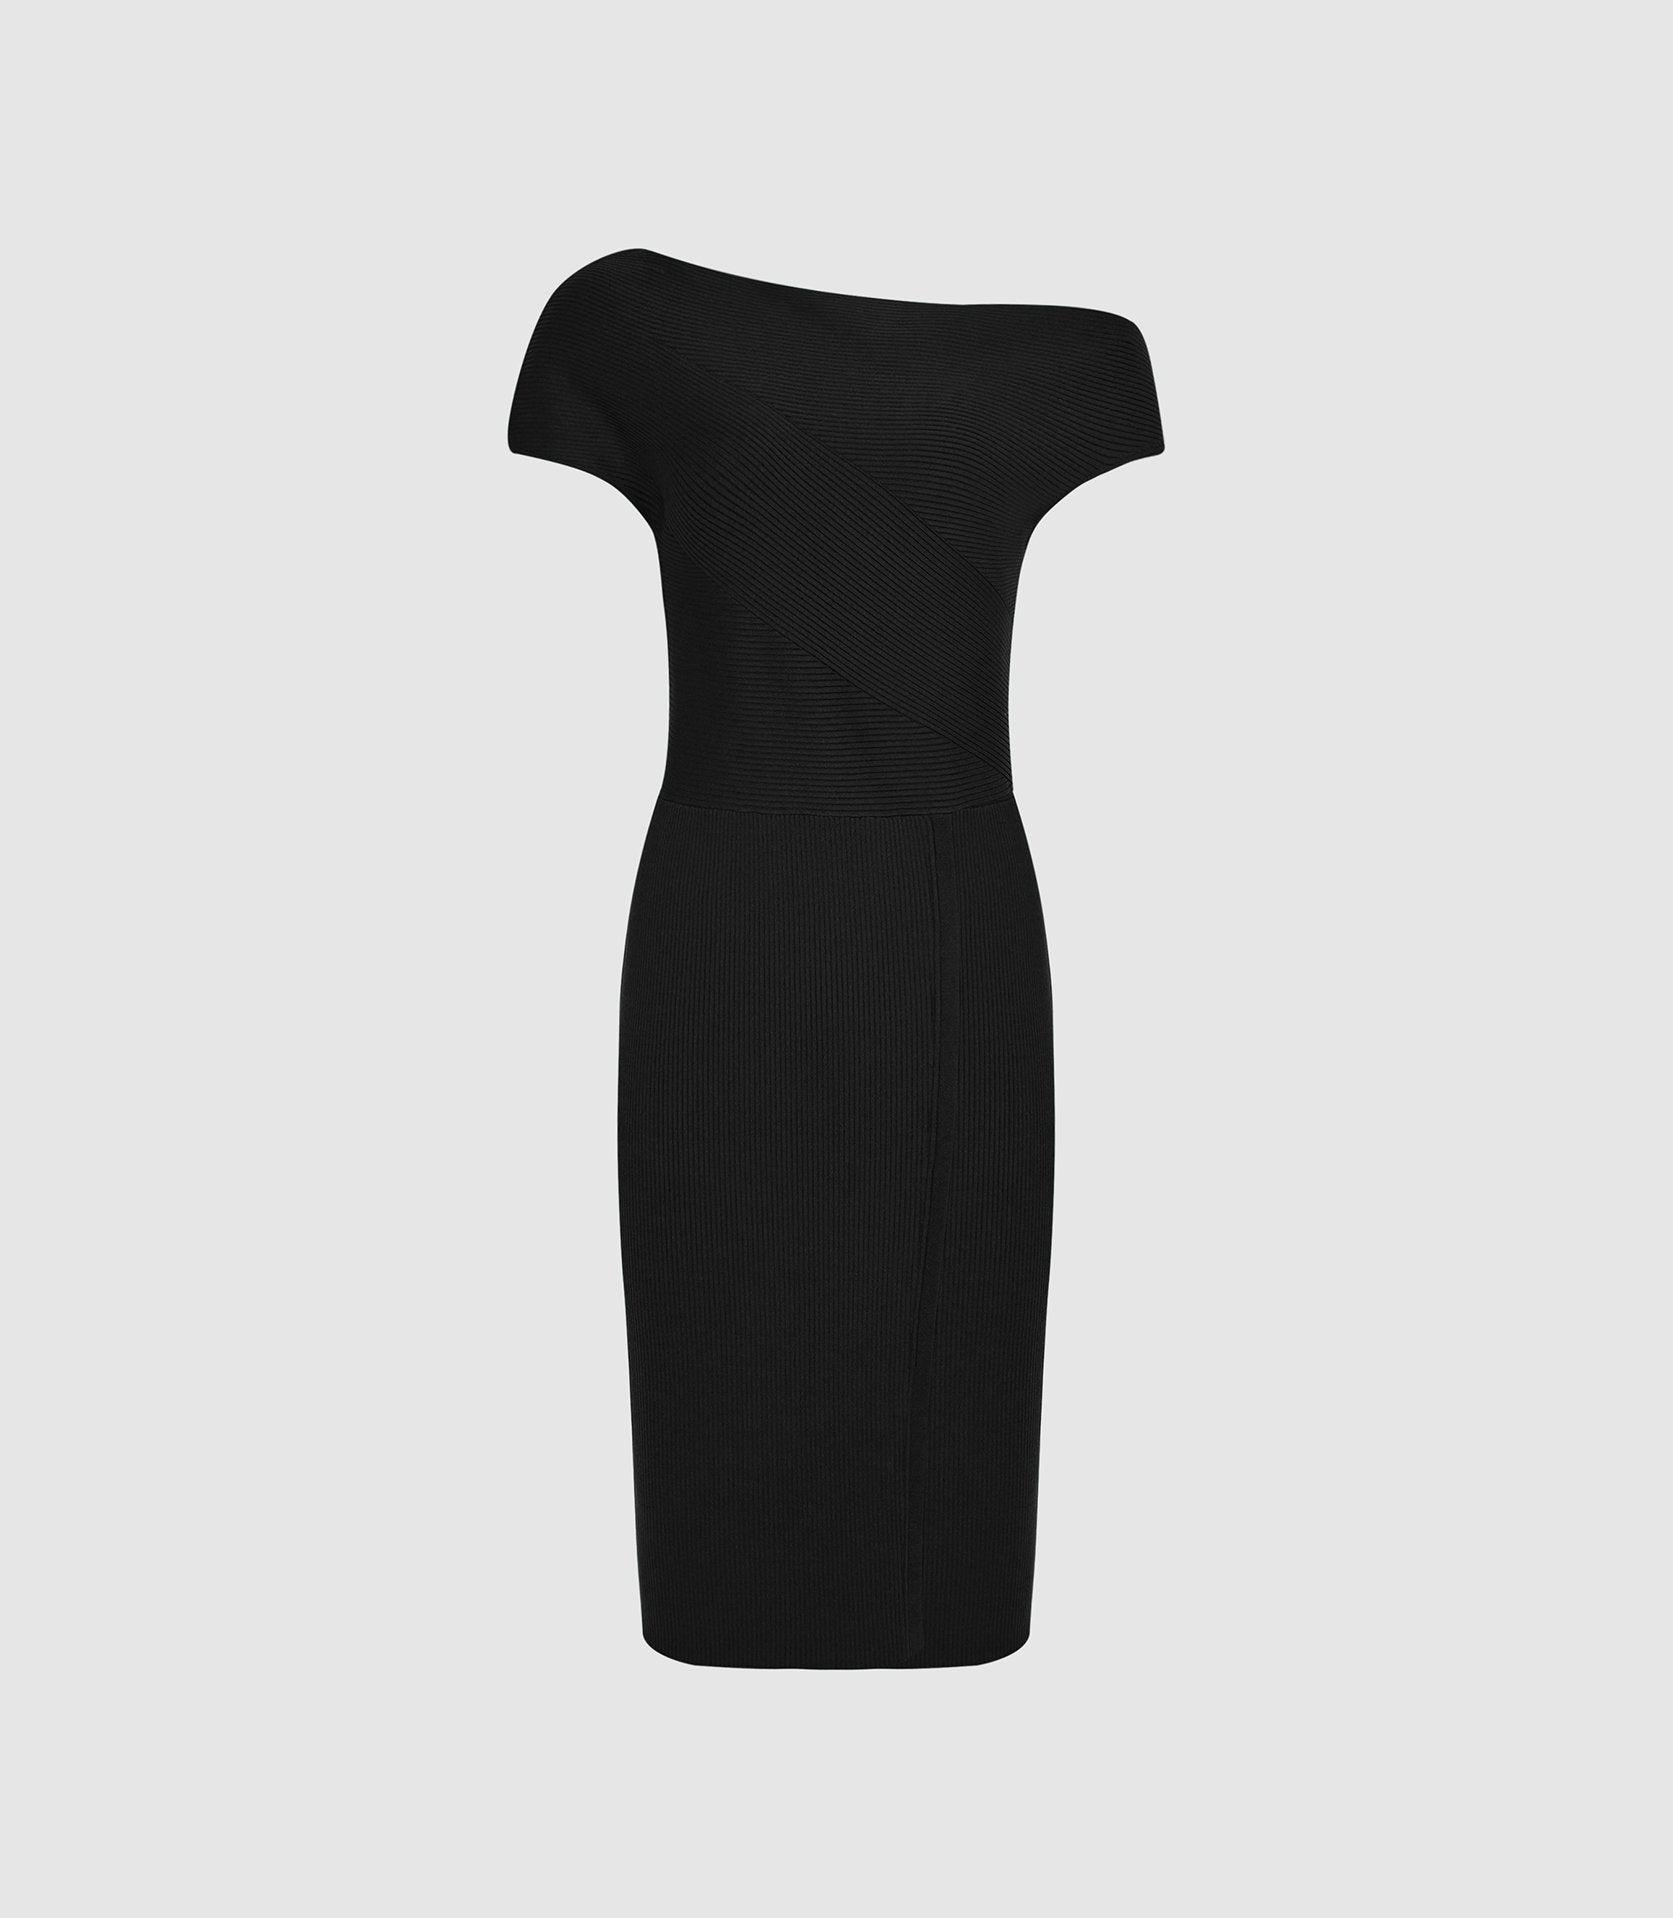 LAVINIA - KNITTED BODYCON DRESS 5